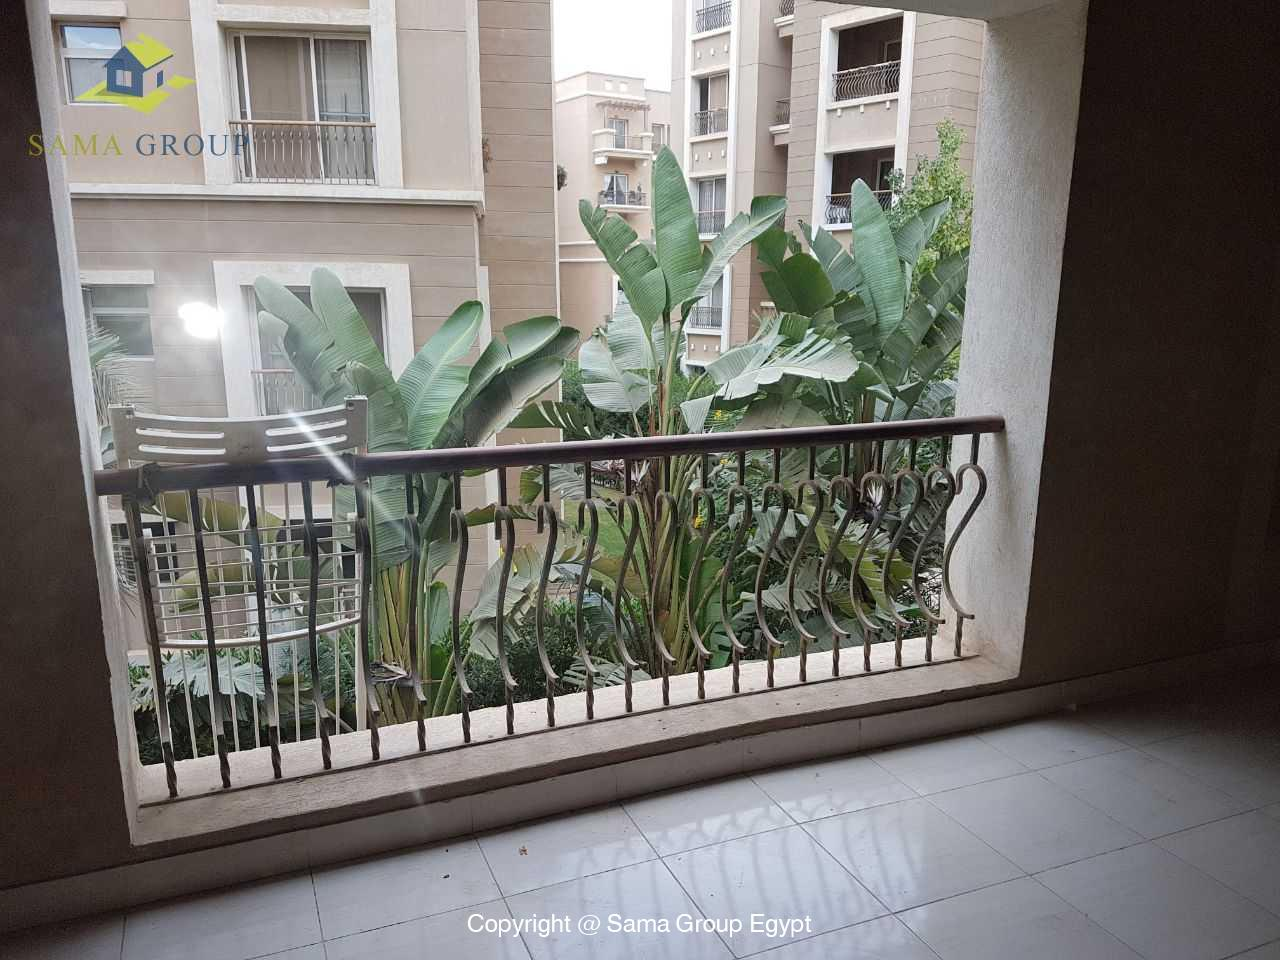 Furnished Apartment For Rent In Katameya Plaza New Cairo,Modern Furnished,Apartment NO #17